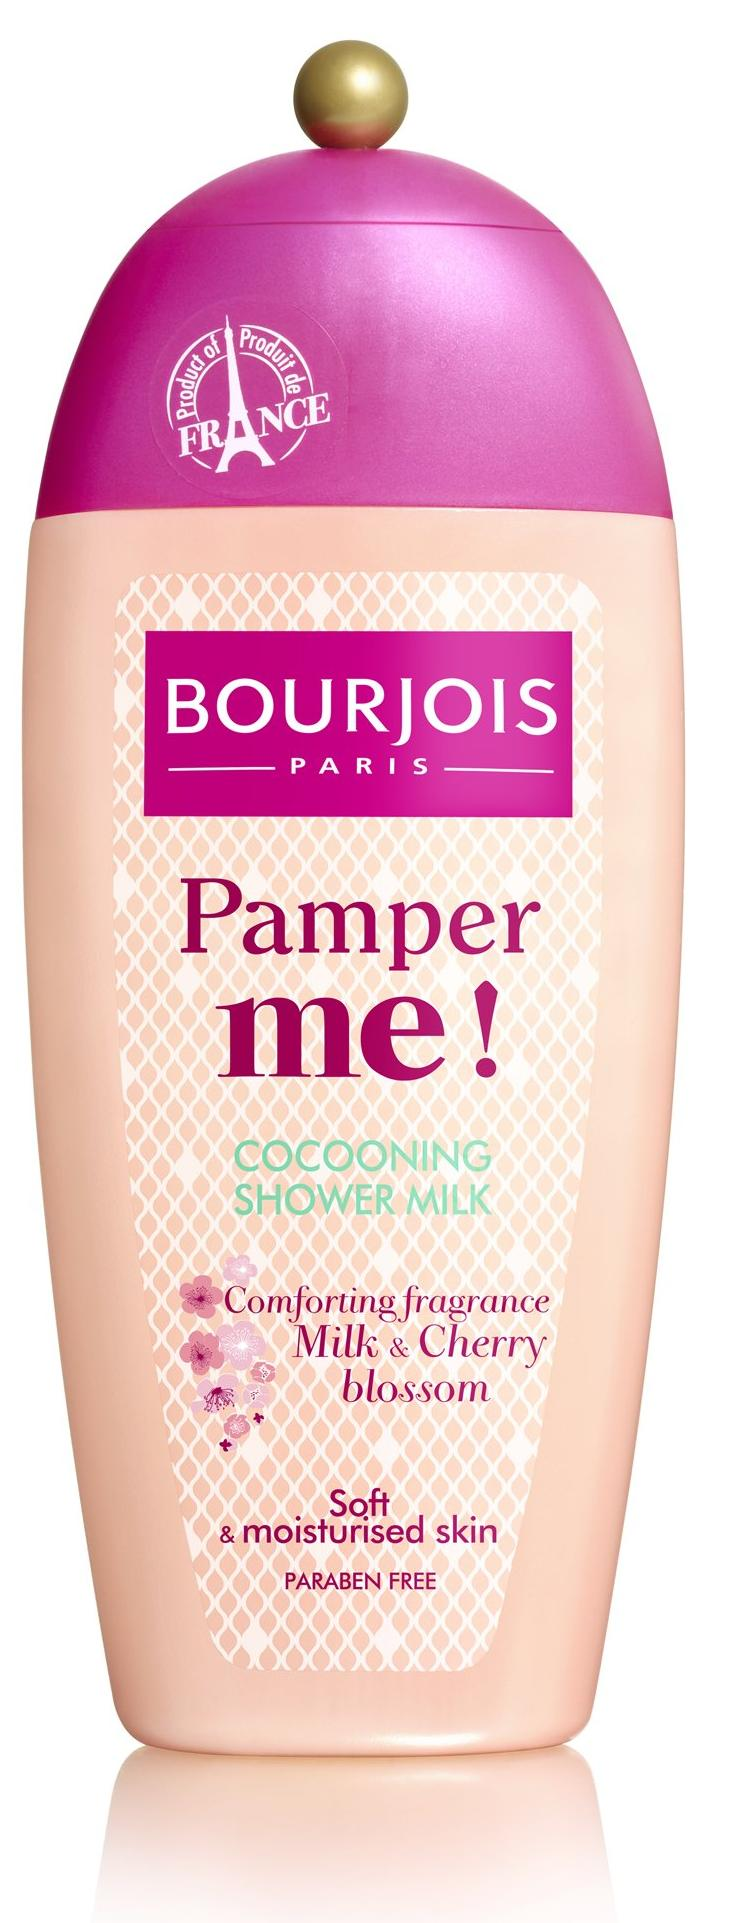 Dušo gelis Bourjois Pamper Me! 250 ml